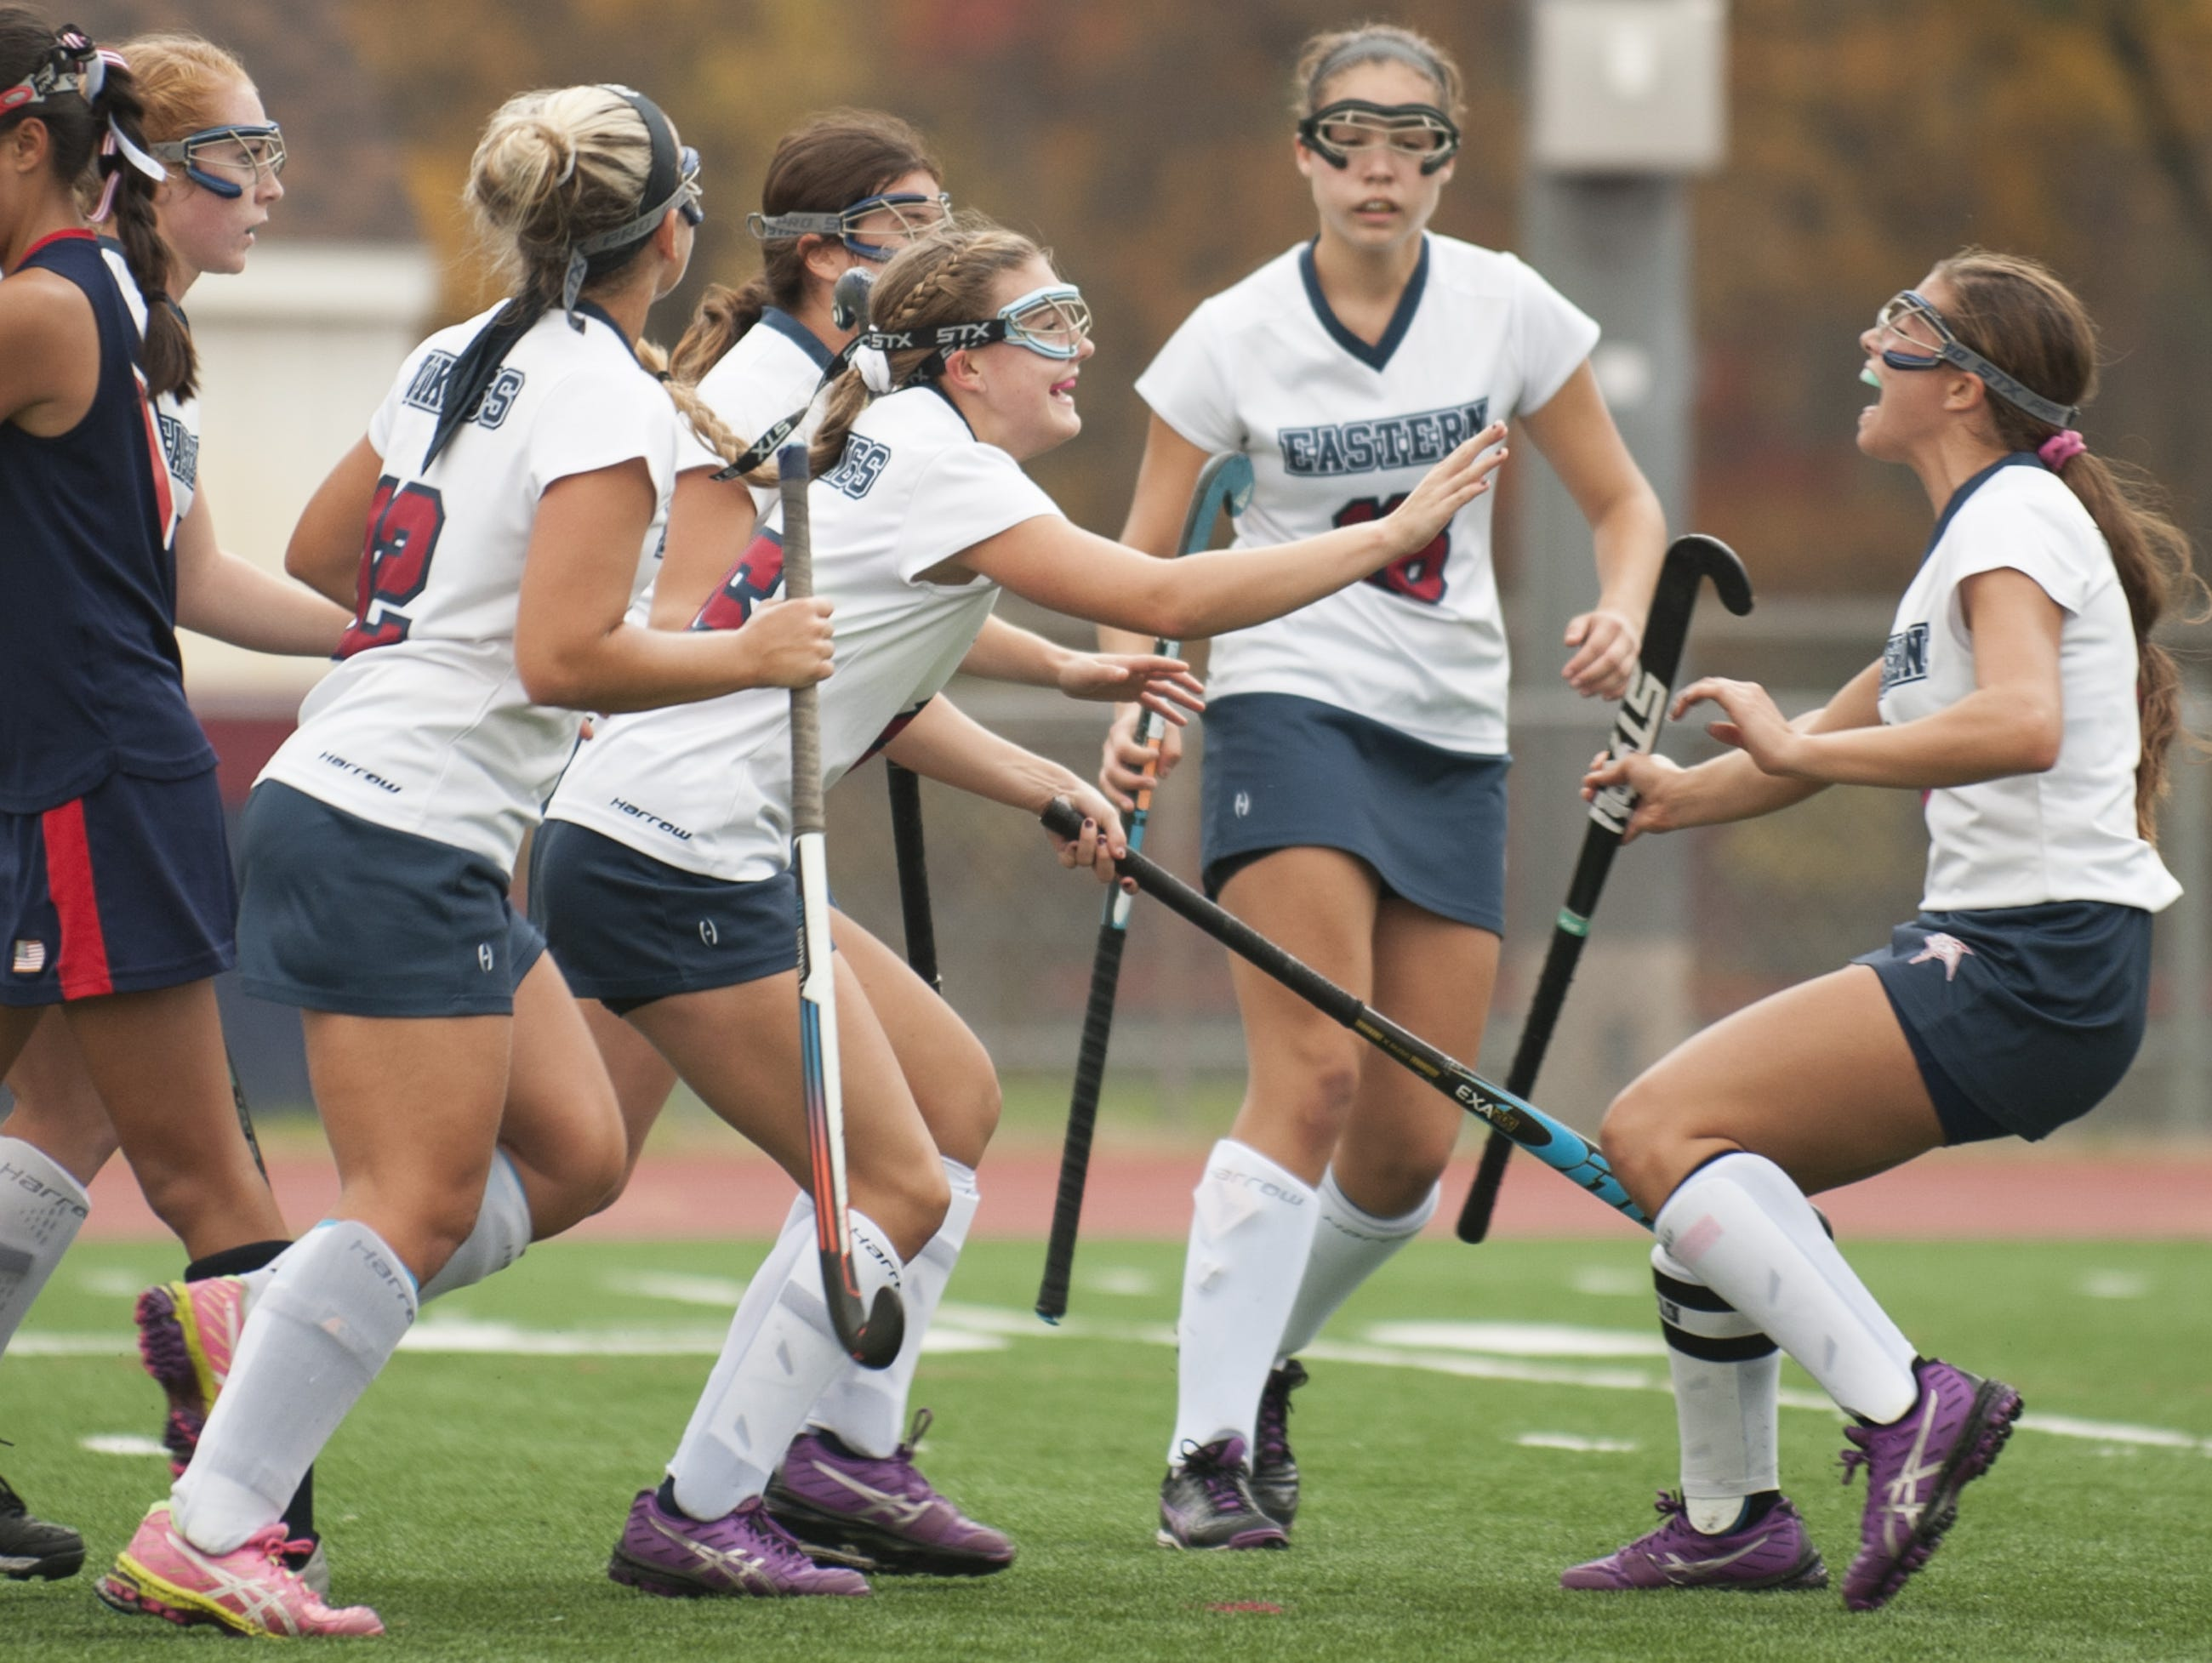 Eastern's Jessica Maute, center, celebrates with teammates after Maute scored a goal in the first half of the South Jersey Group 4 field hockey final. Eastern prevailed with an 8-1 win over Washington Township.